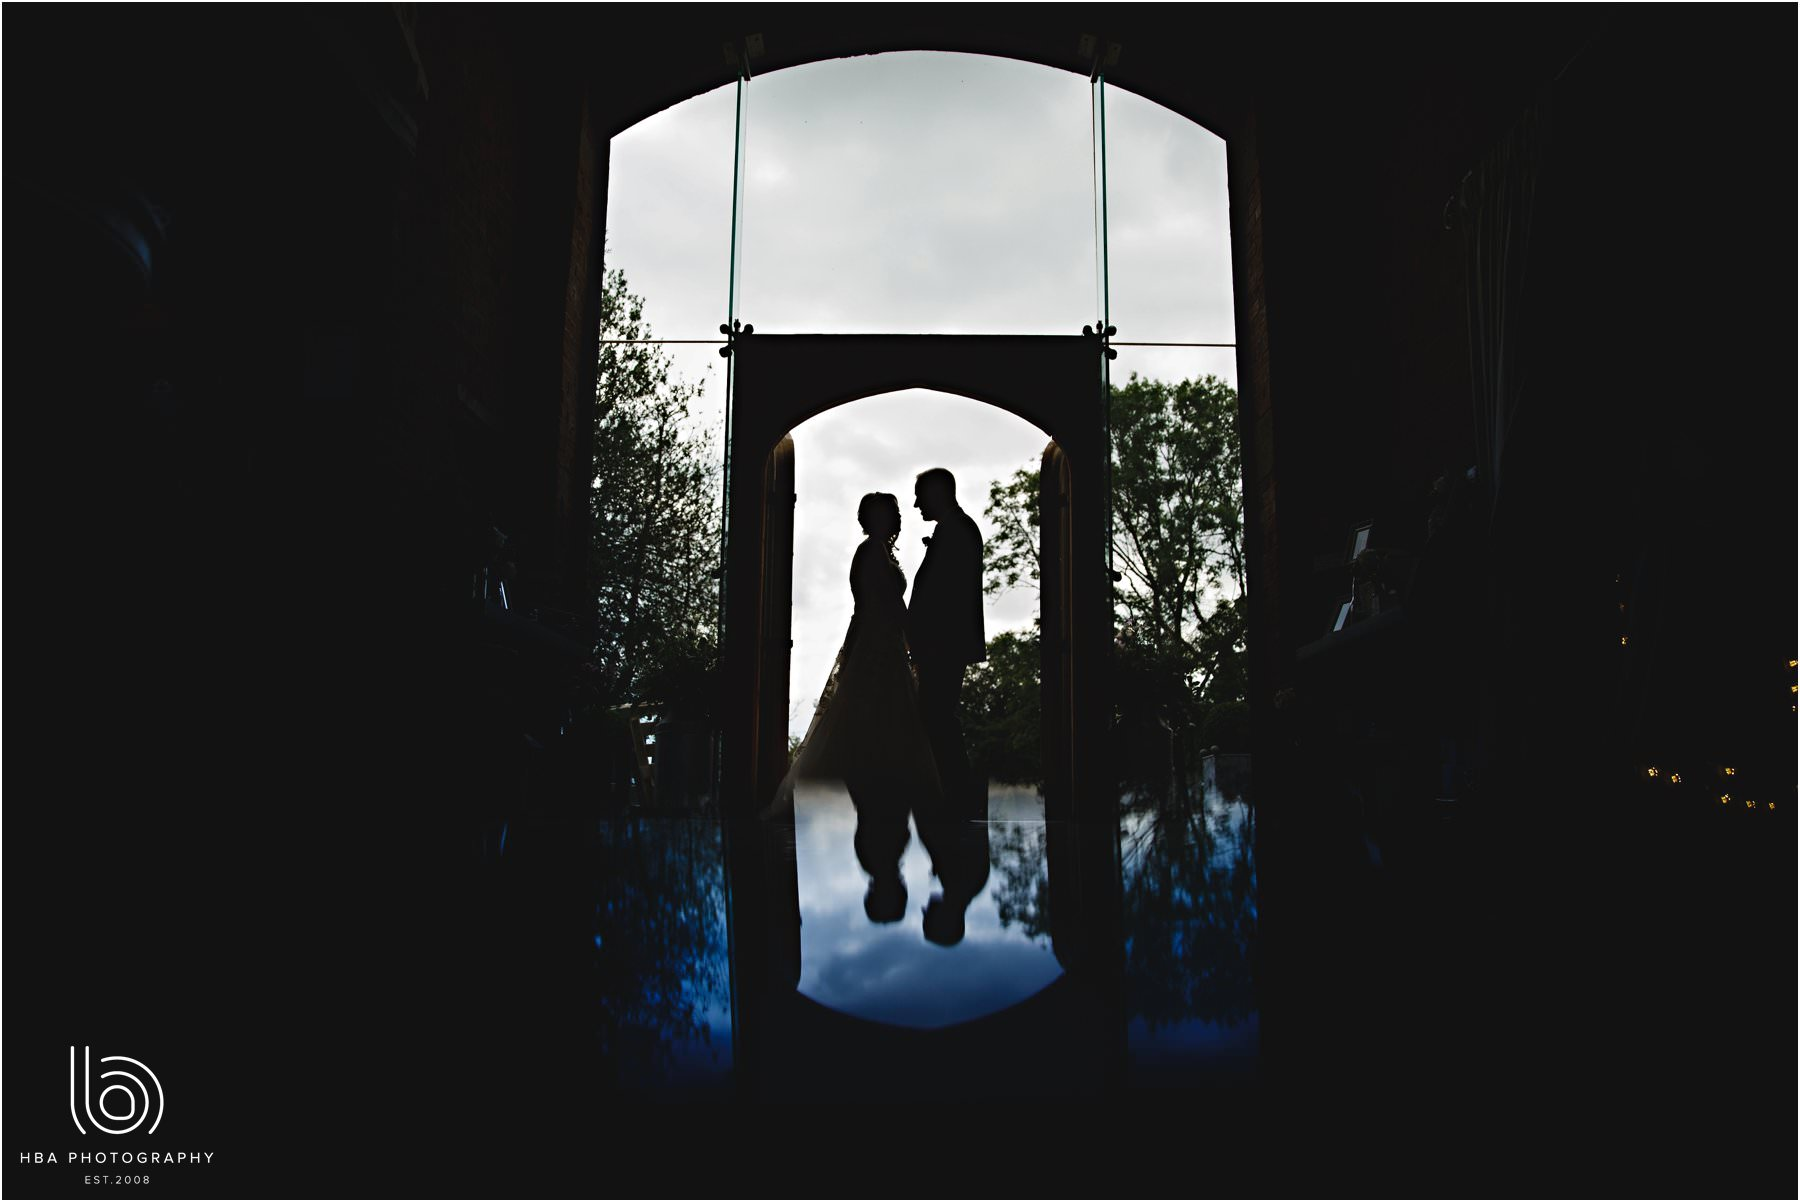 the bride & groom in silhouette and reflection